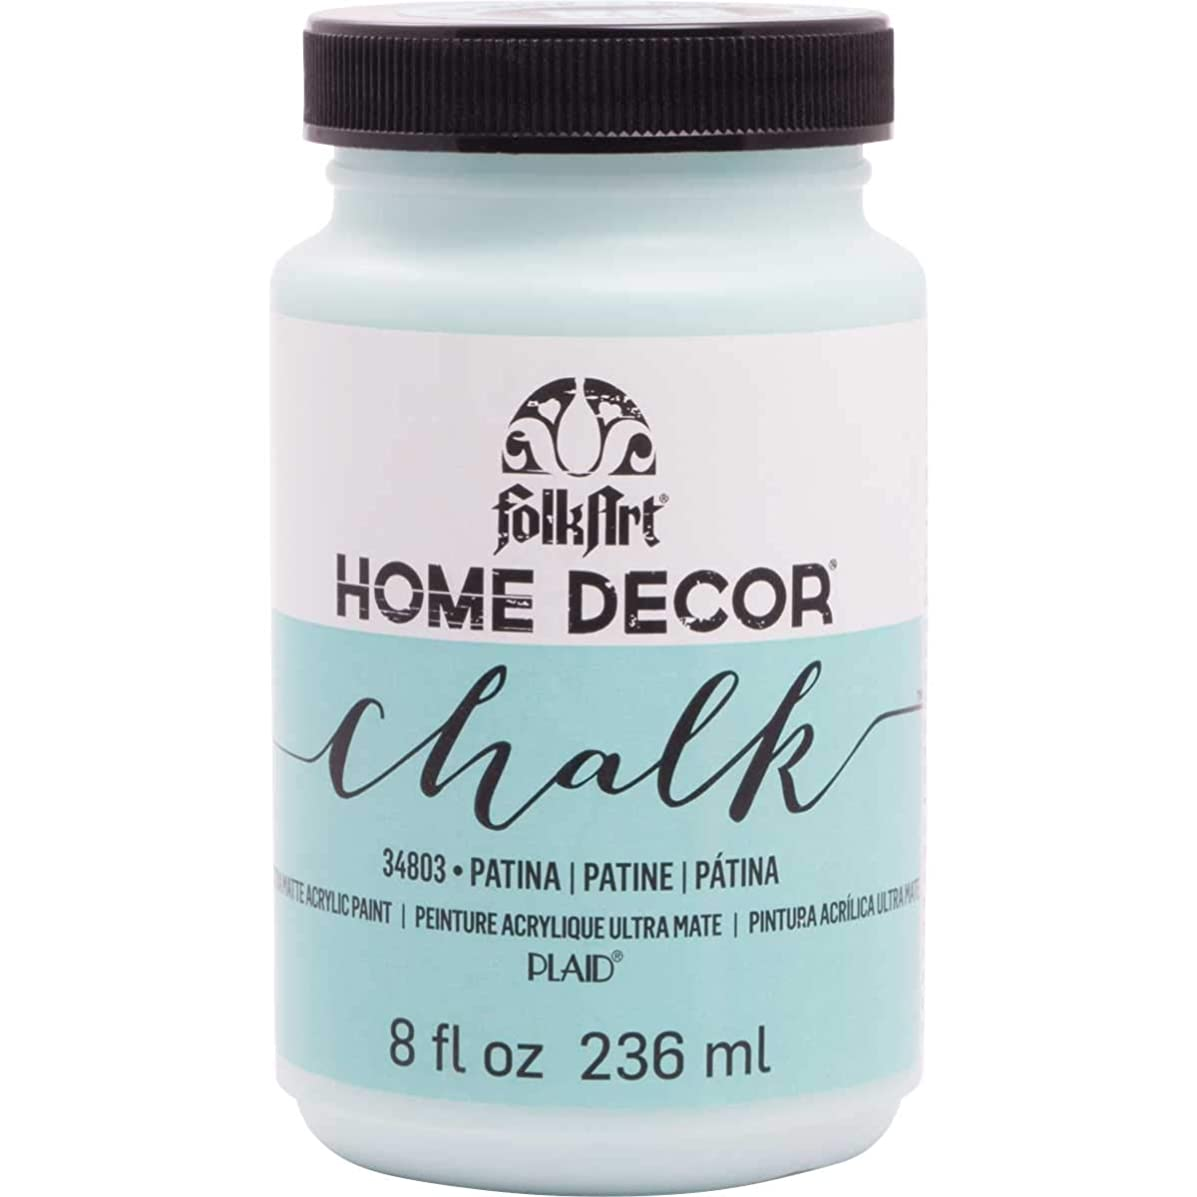 FolkArt 34803 Home Decor Chalk Furniture & Craft Paint in Assorted Colors, 8 Ounce, Patina